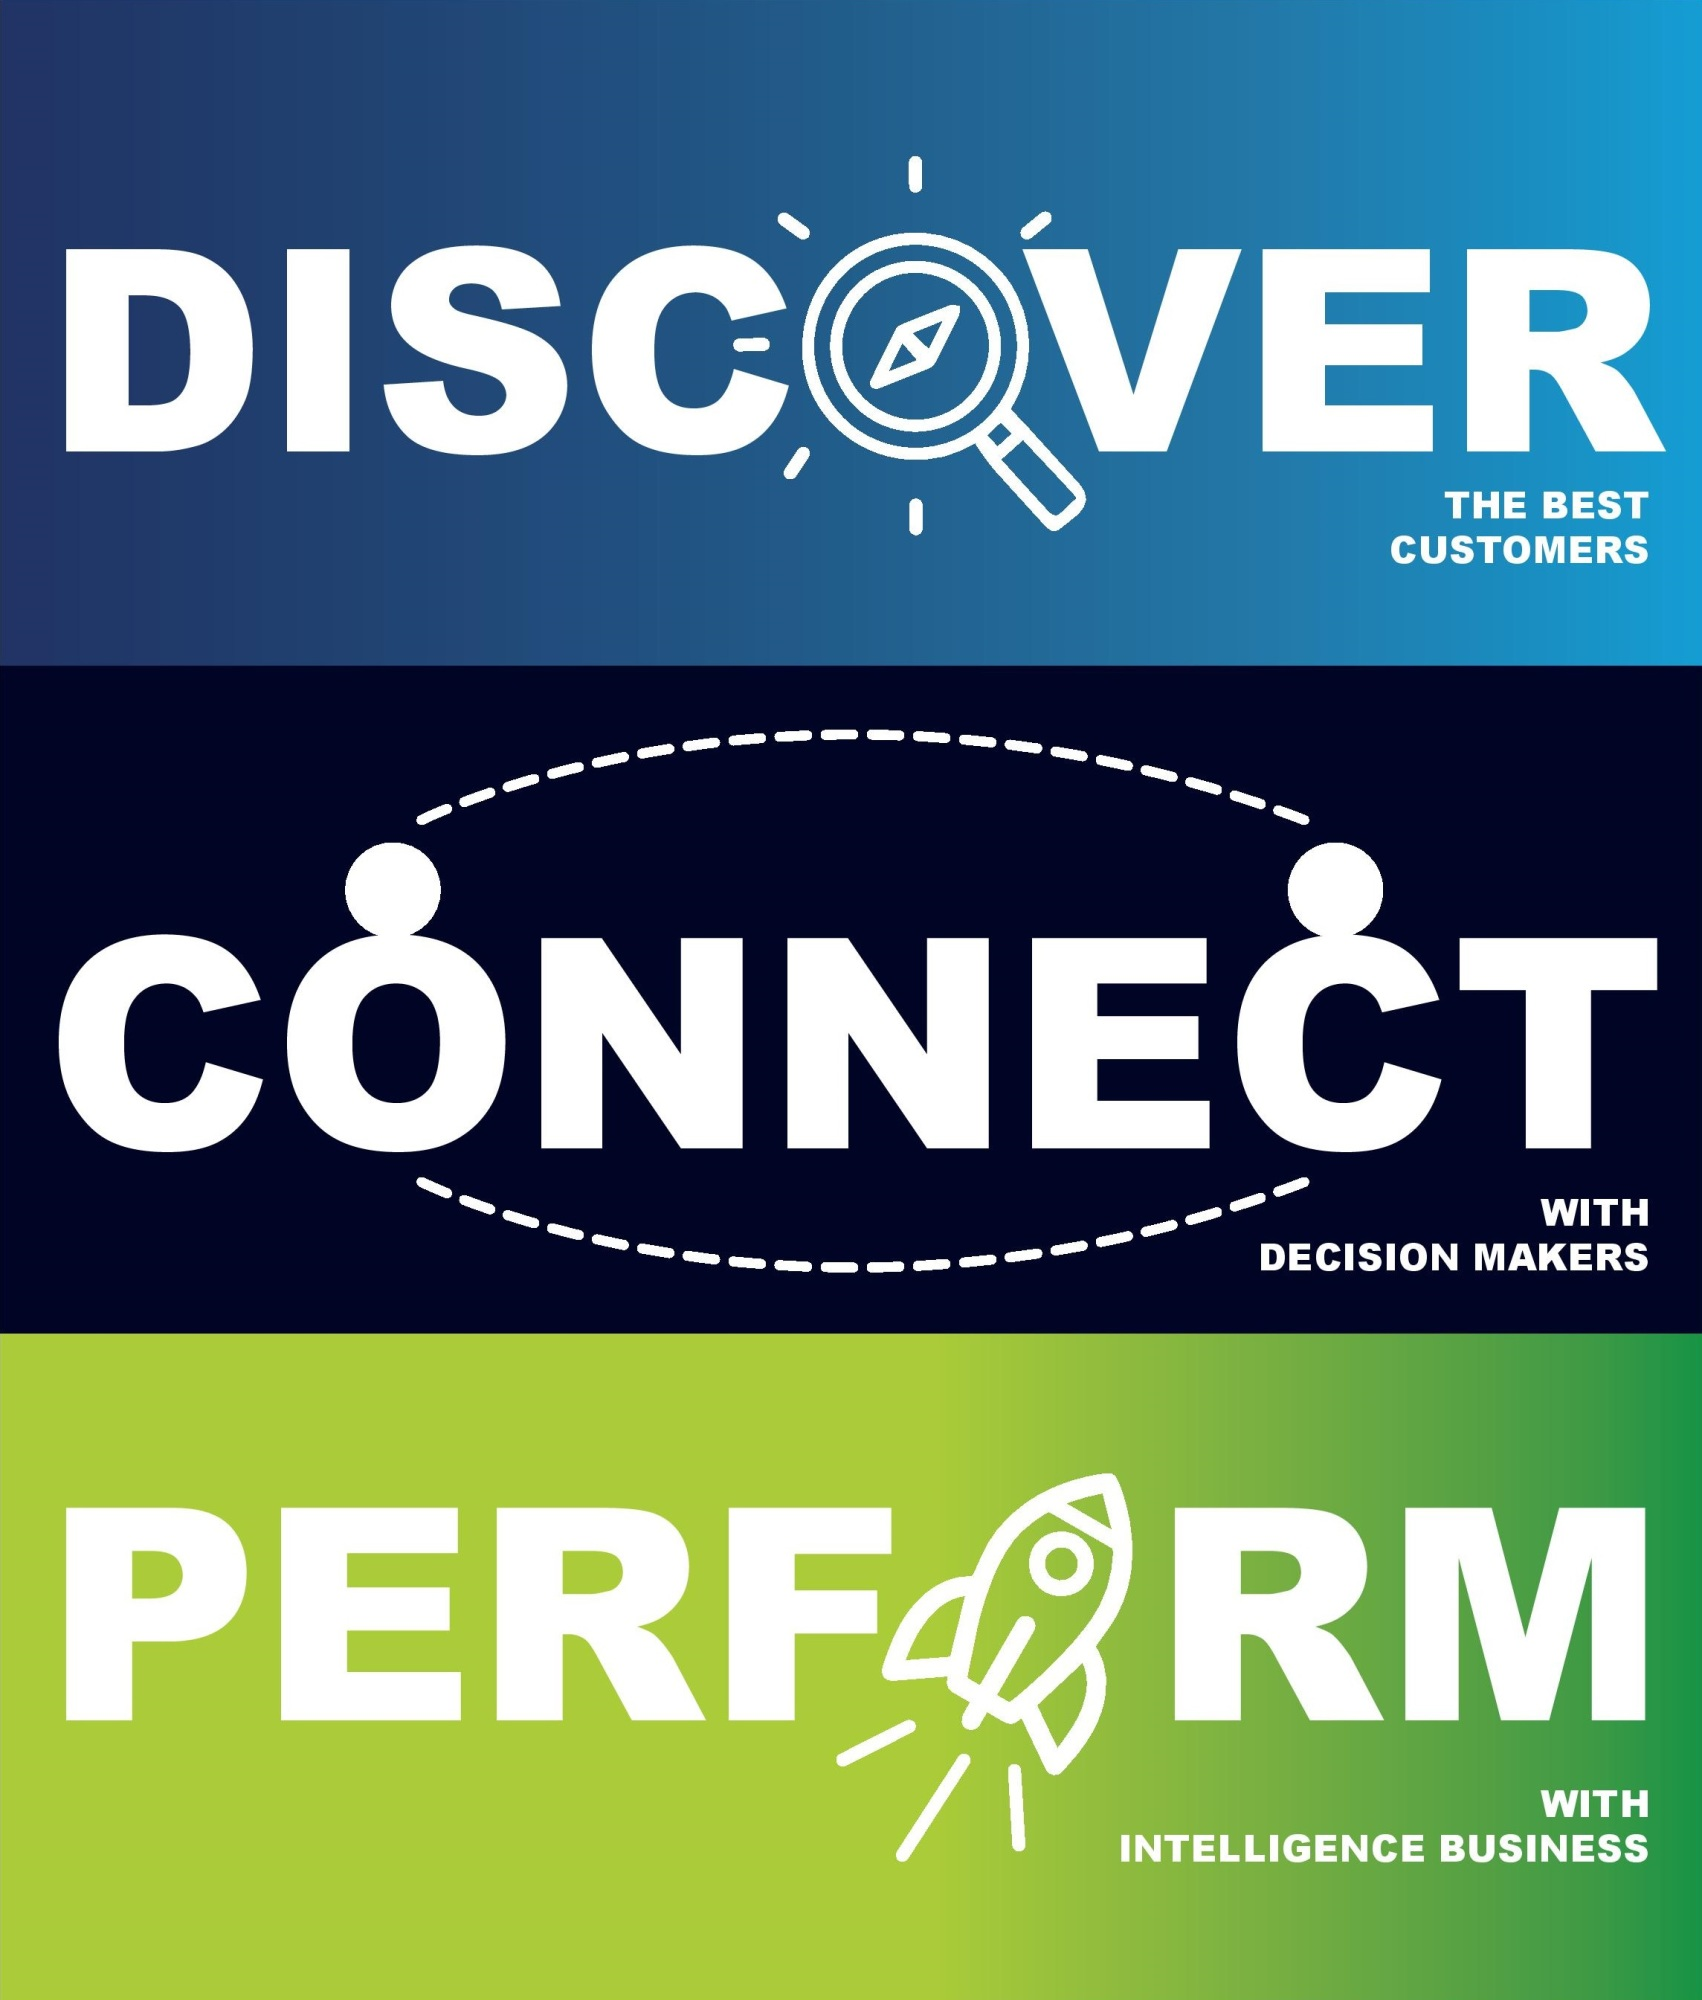 Discoer Connect Perform slogan